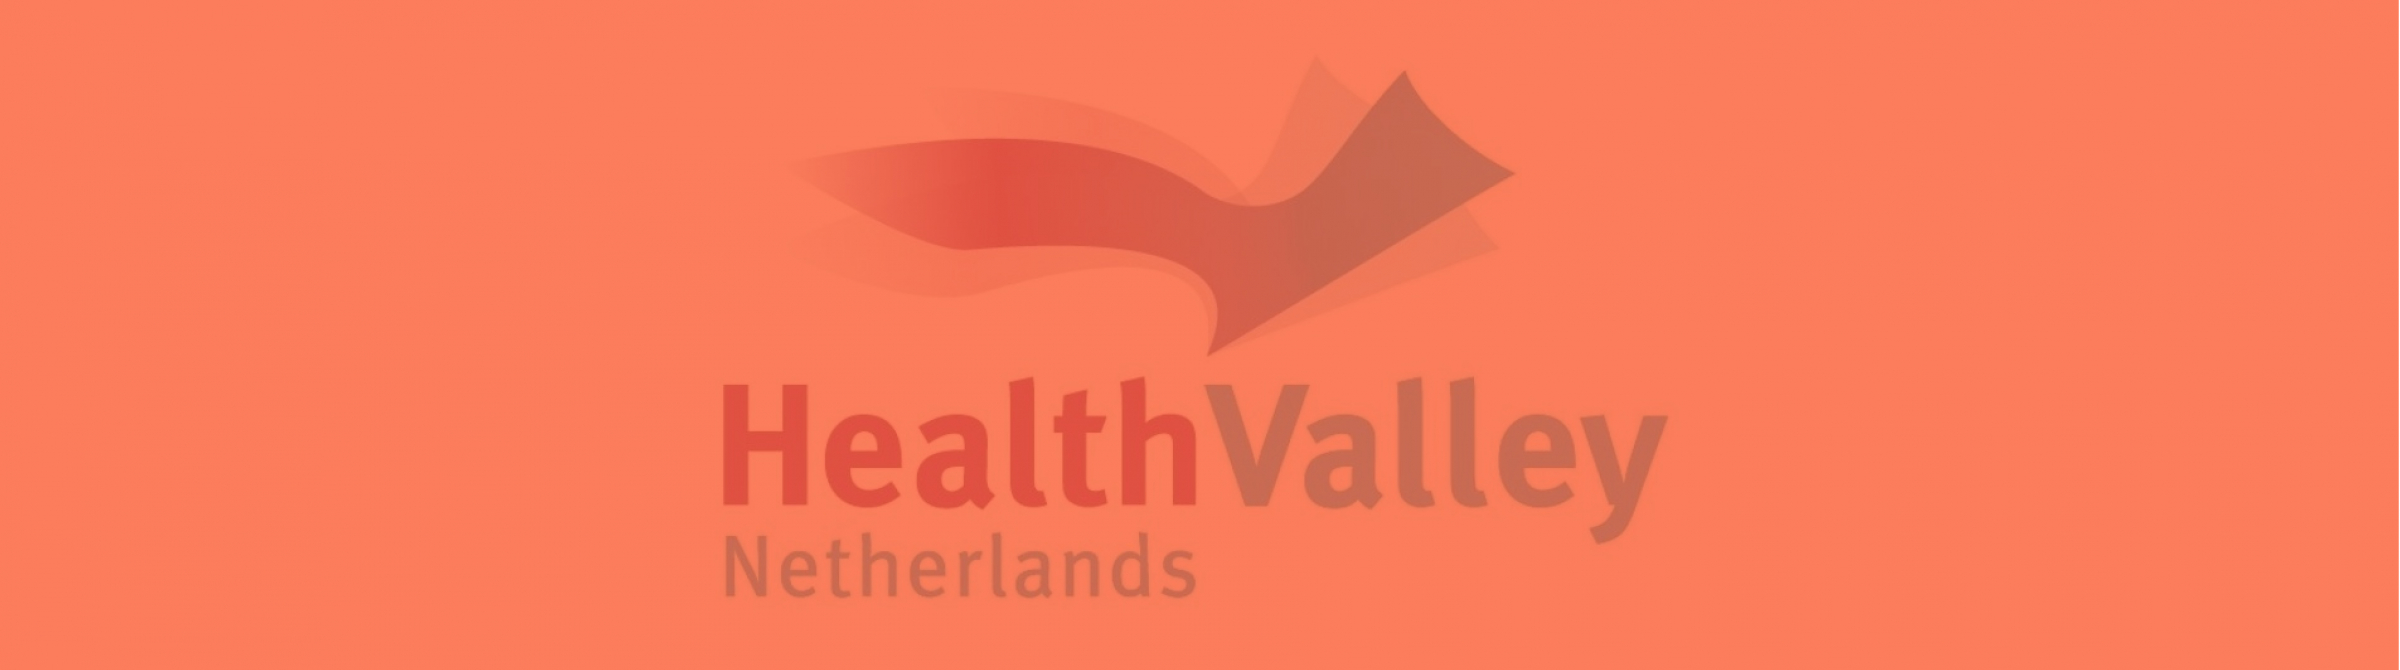 Agenda Zorginnovatie.nl - HealthValley partnerevent